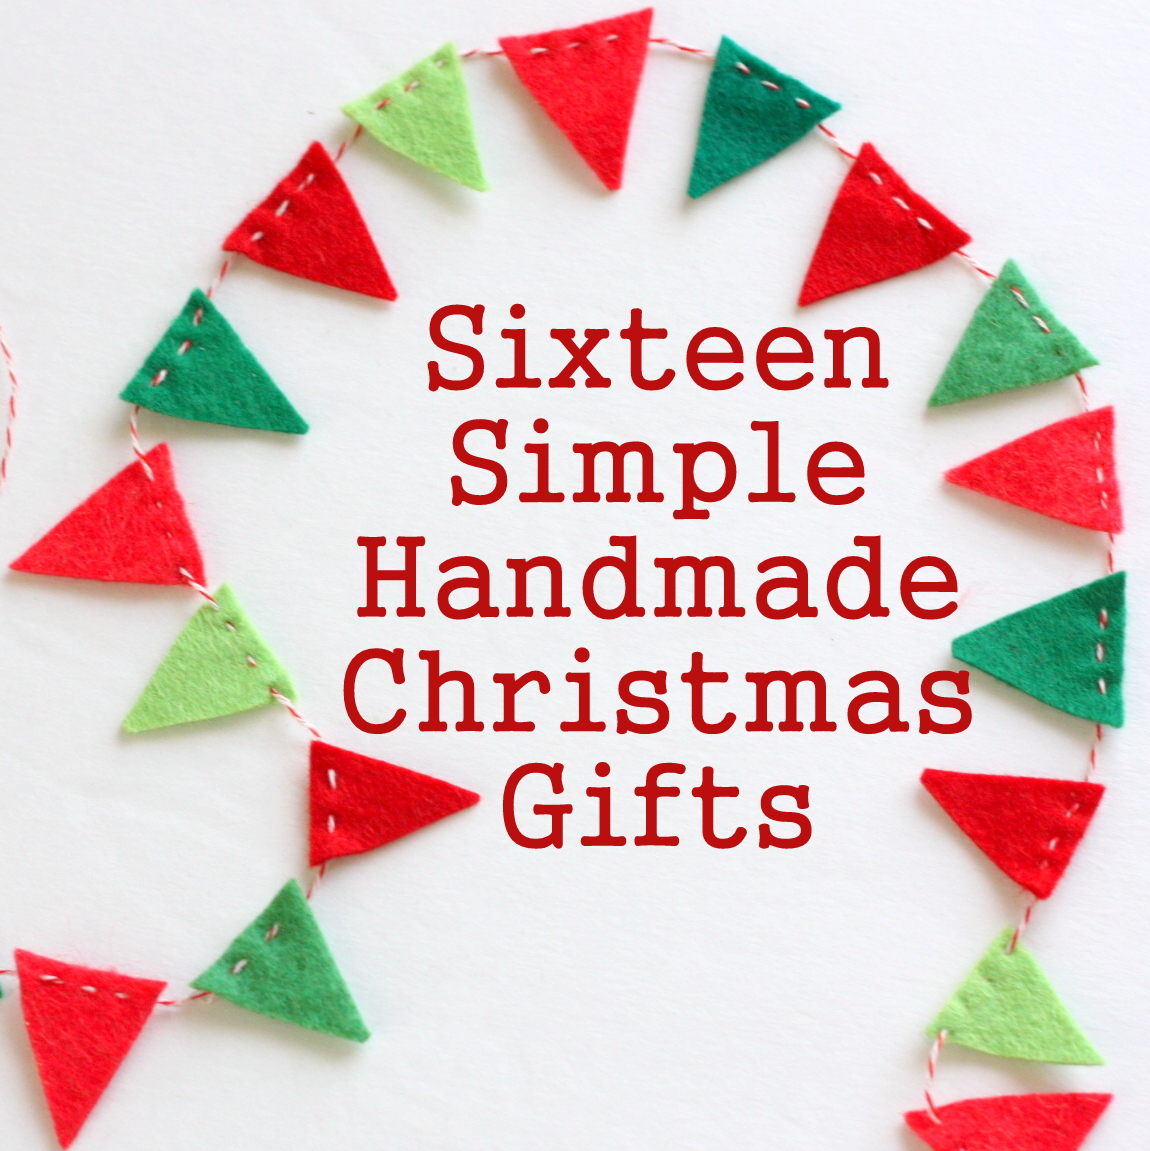 16 simple handmade christmas gift tutorials - Easy Christmas Gifts To Make